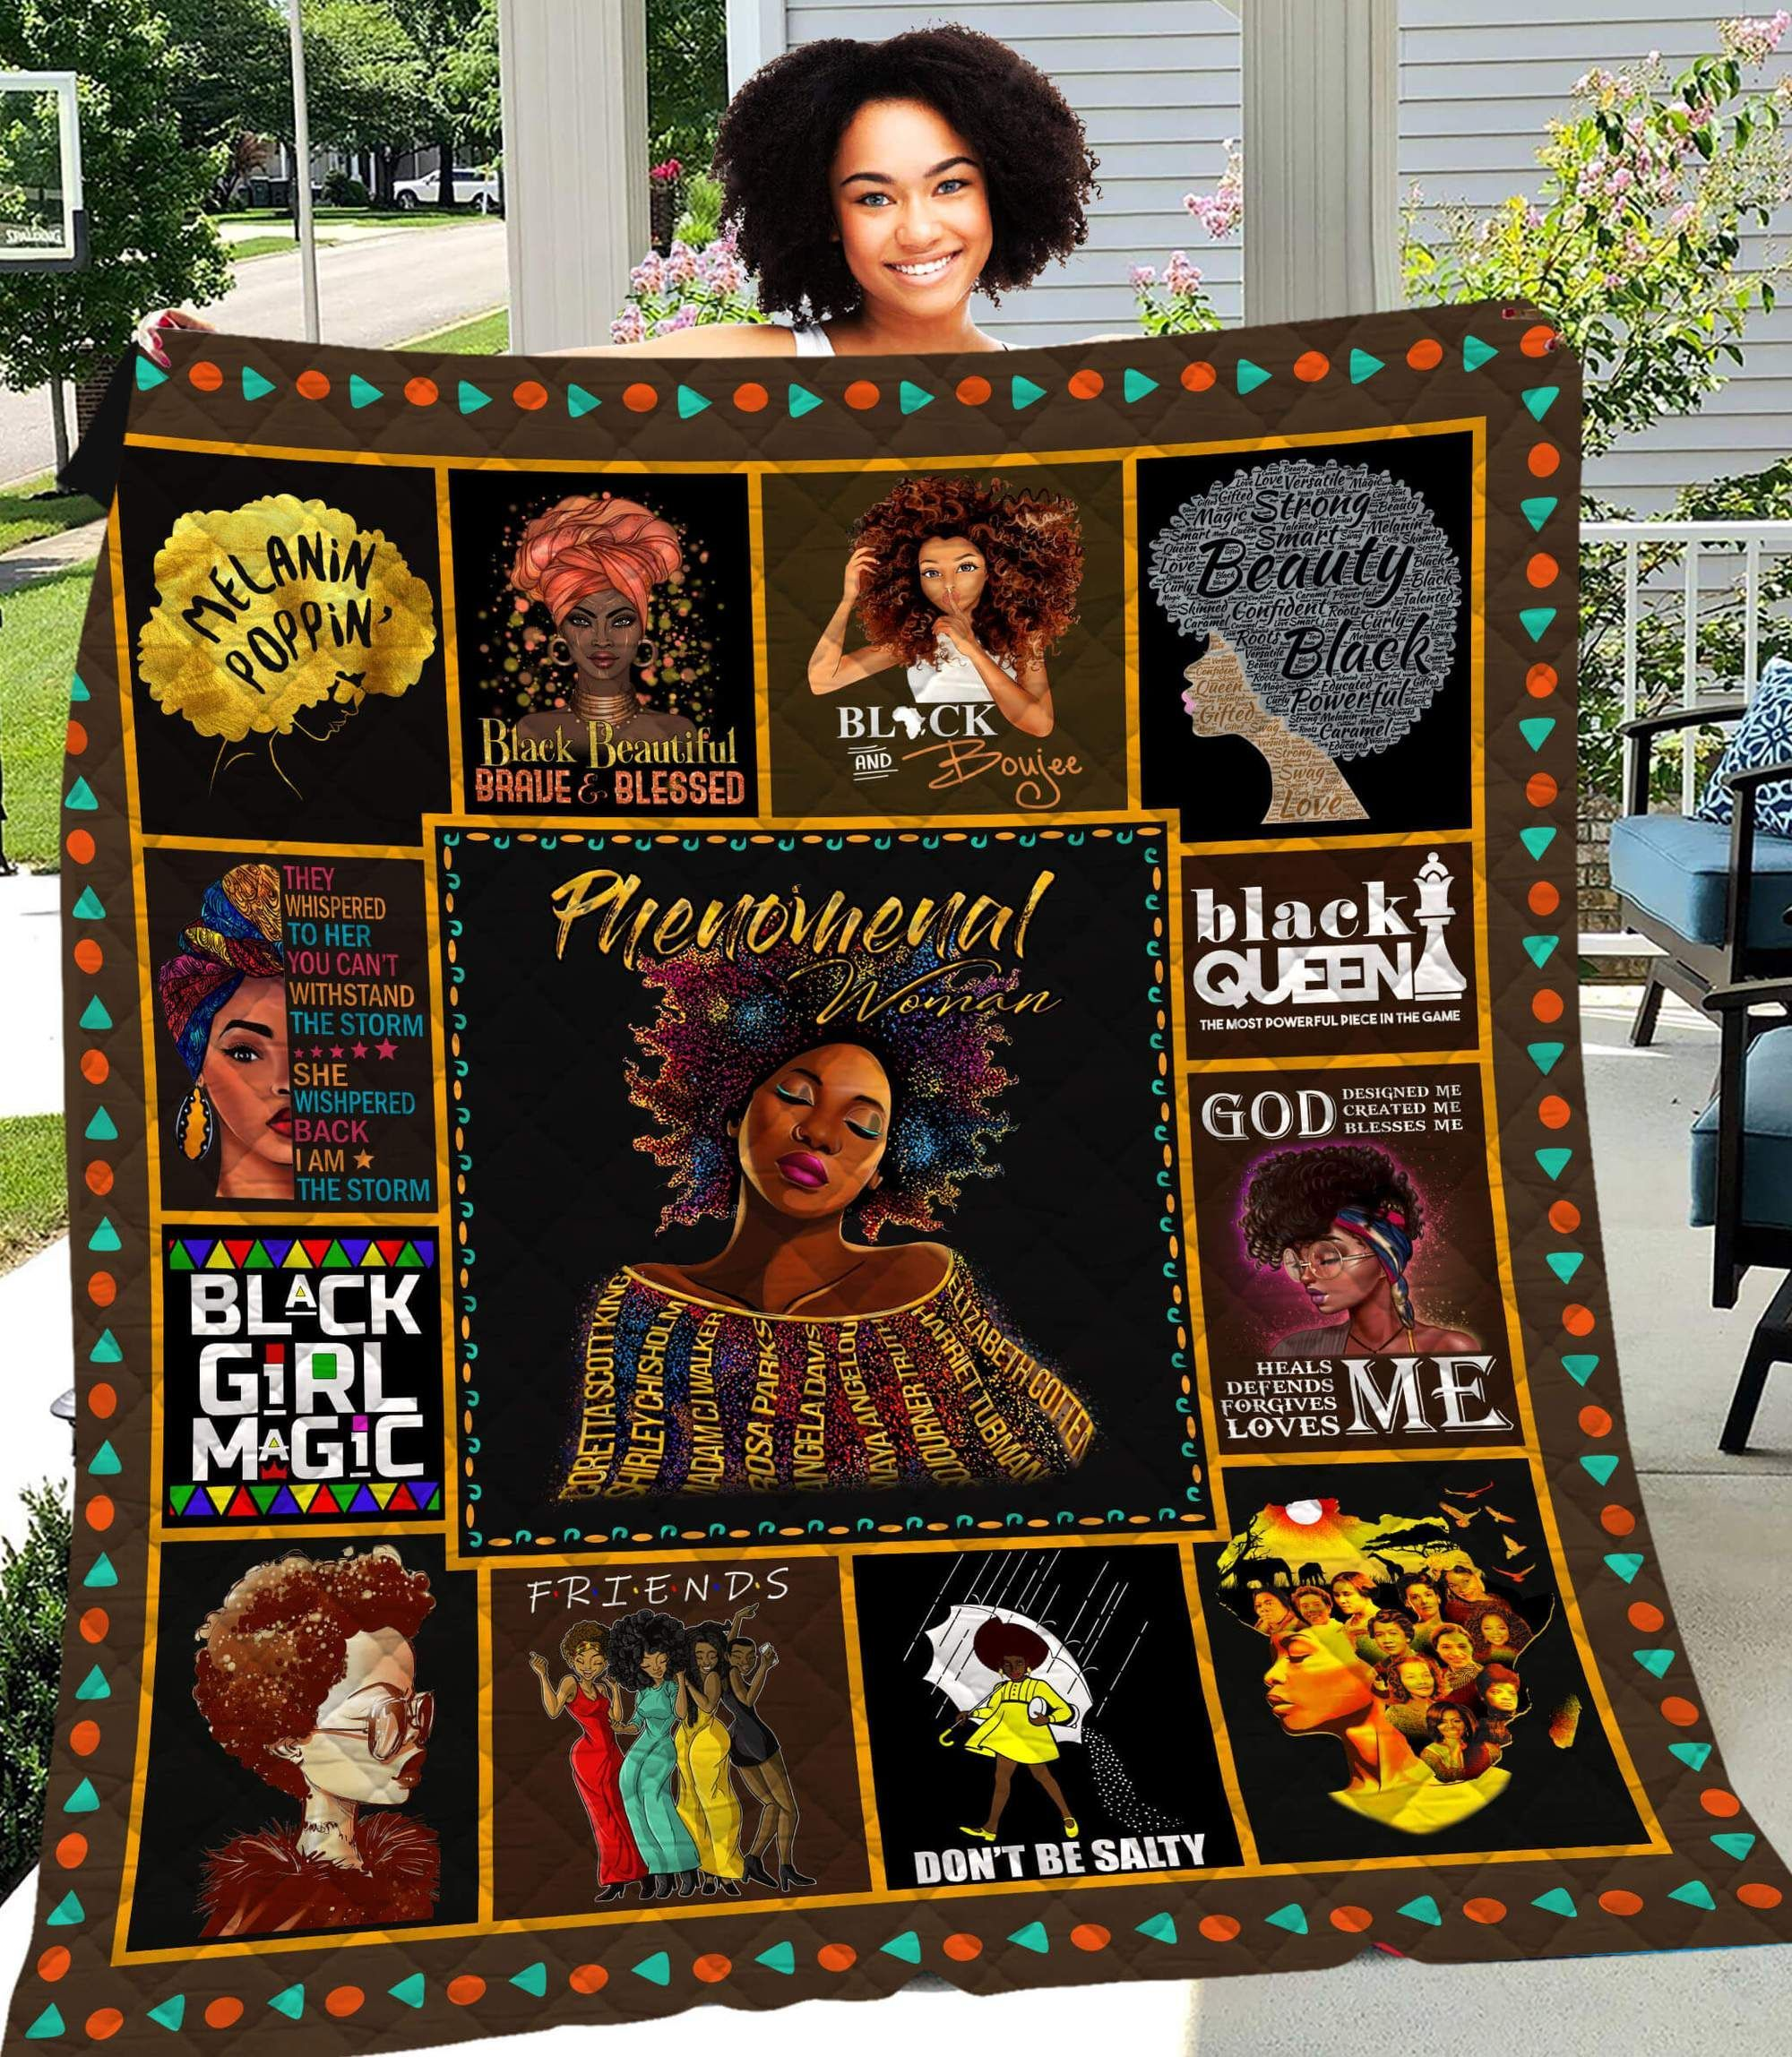 Phenomenal Women Afro Girl Magic CLM3110268 Quilt Blanket - Phenomenal Women Afro Girl Magic CLM31